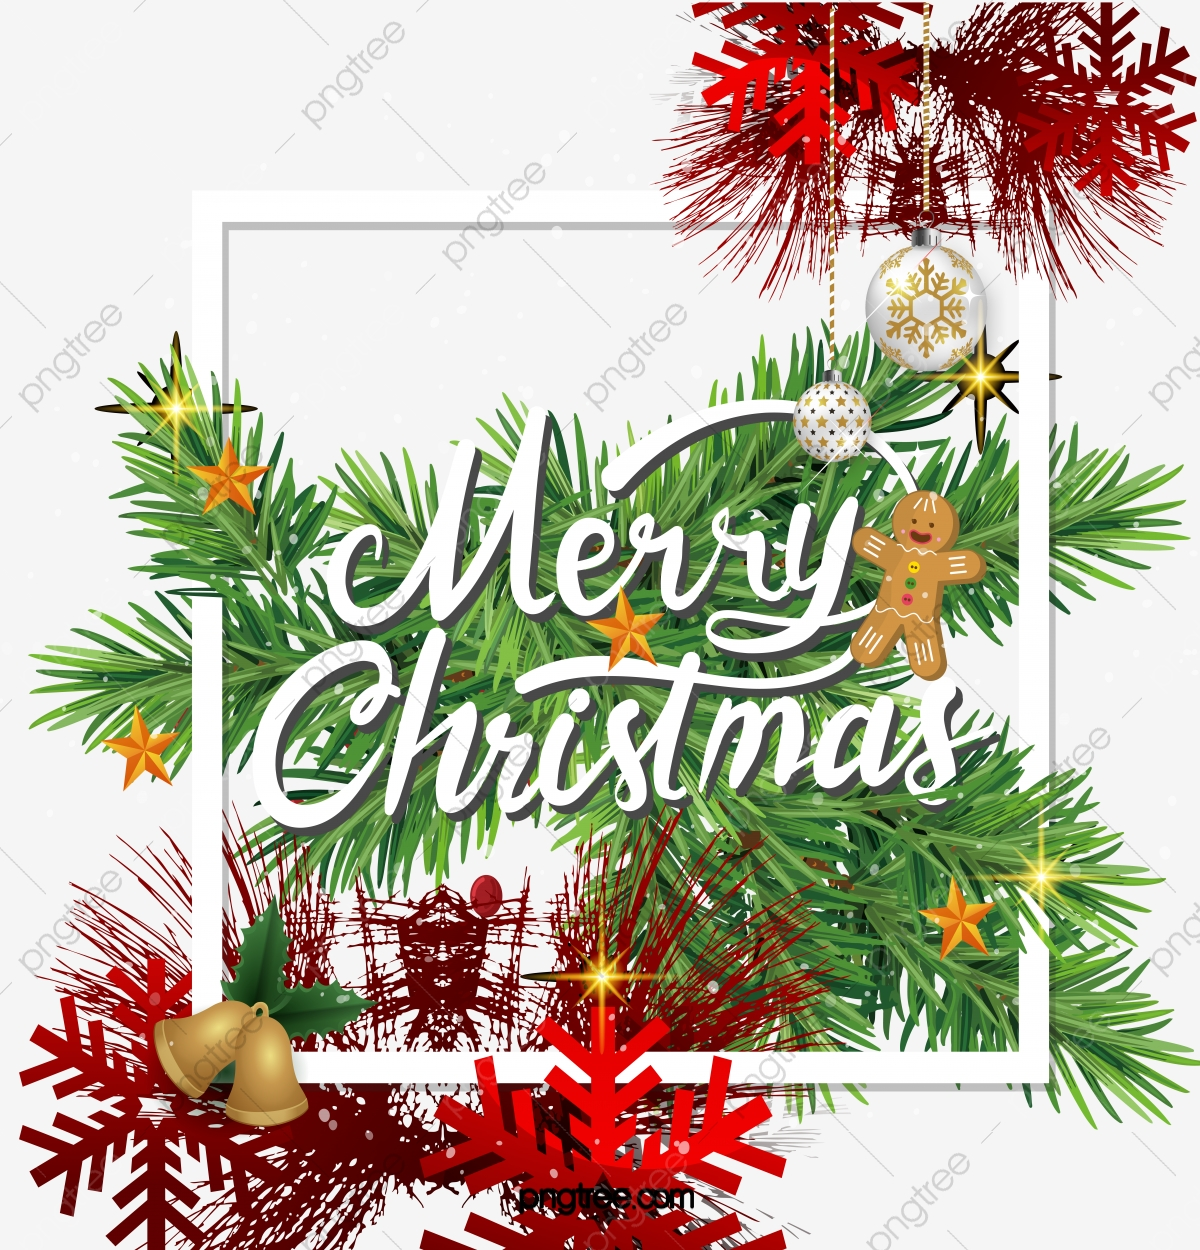 realistic christmas border design christmas clipart christmas leaves png and vector with transparent background for free download https pngtree com freepng realistic christmas border design 5102523 html